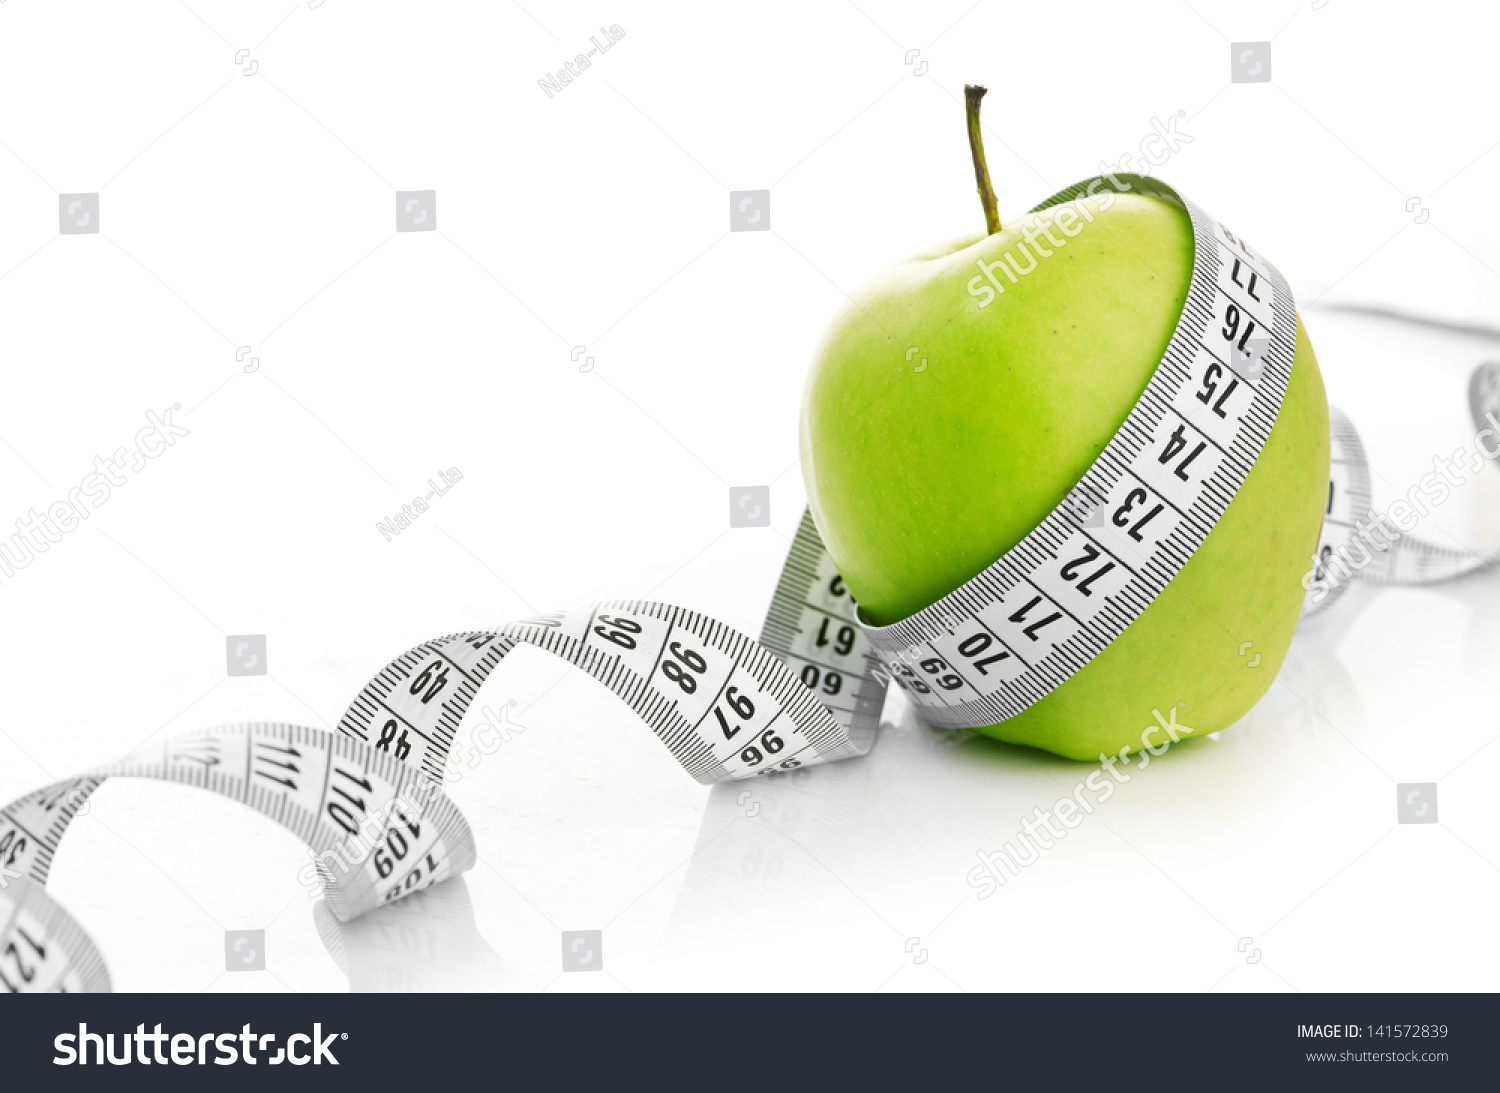 Measuring Tape Wrapped Around Green Apple Stock Photo Image